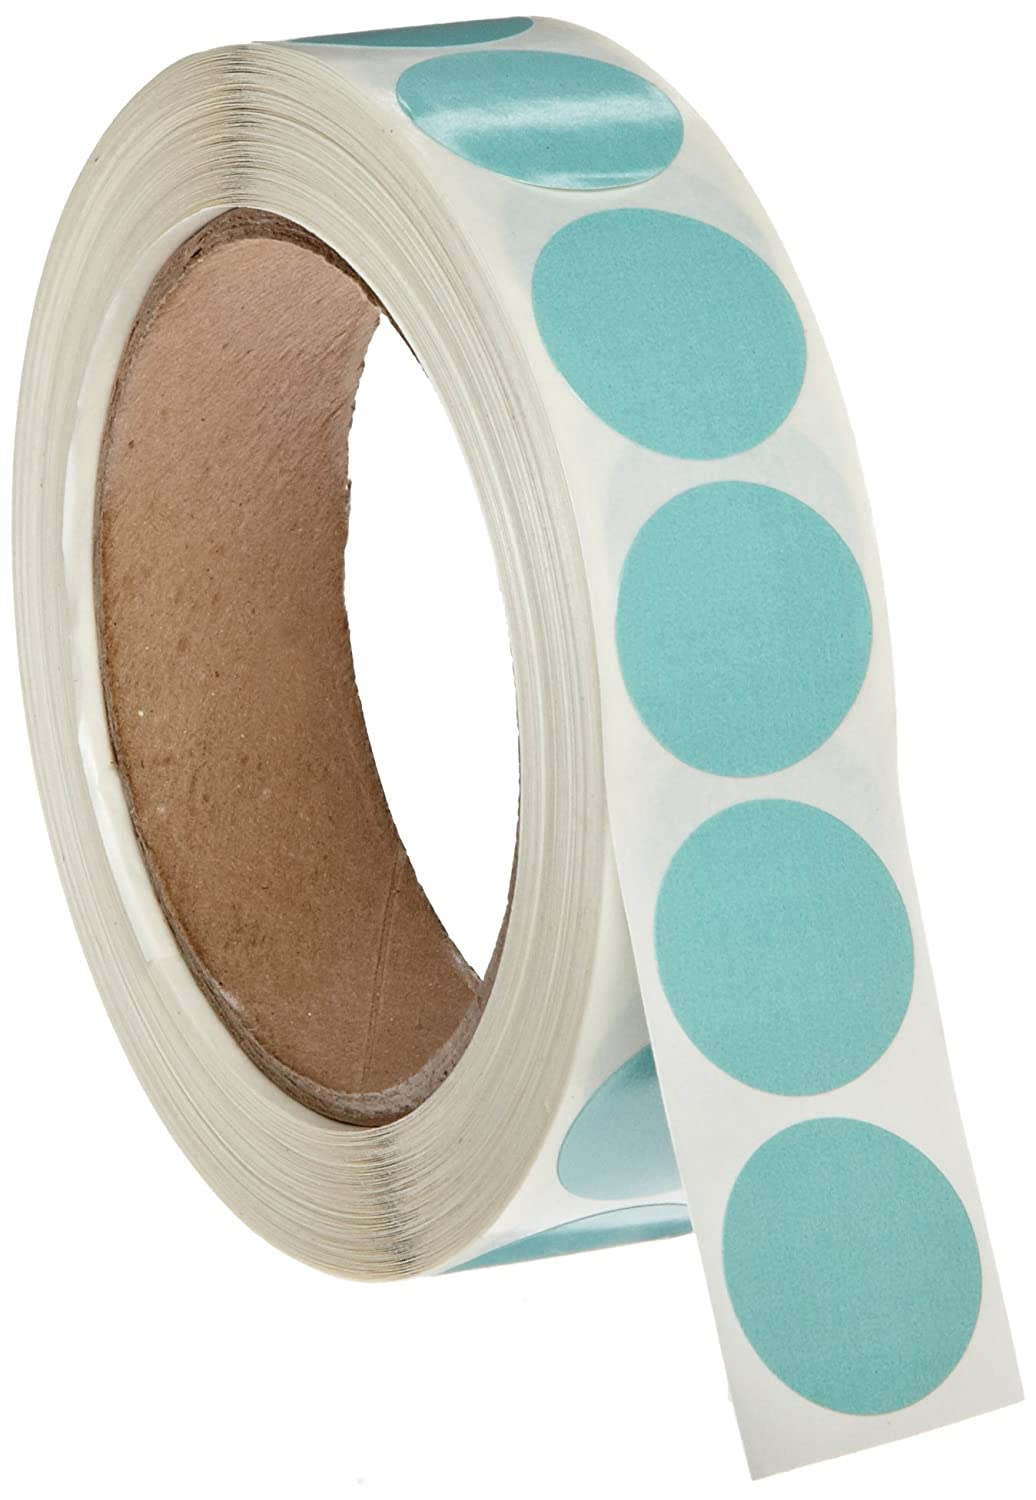 Roll Products 119-0004 Adhesive Dot Label, 1' Diameter, For Inventory and Marking, Fluorescent Chartreuse (Roll of 1000)